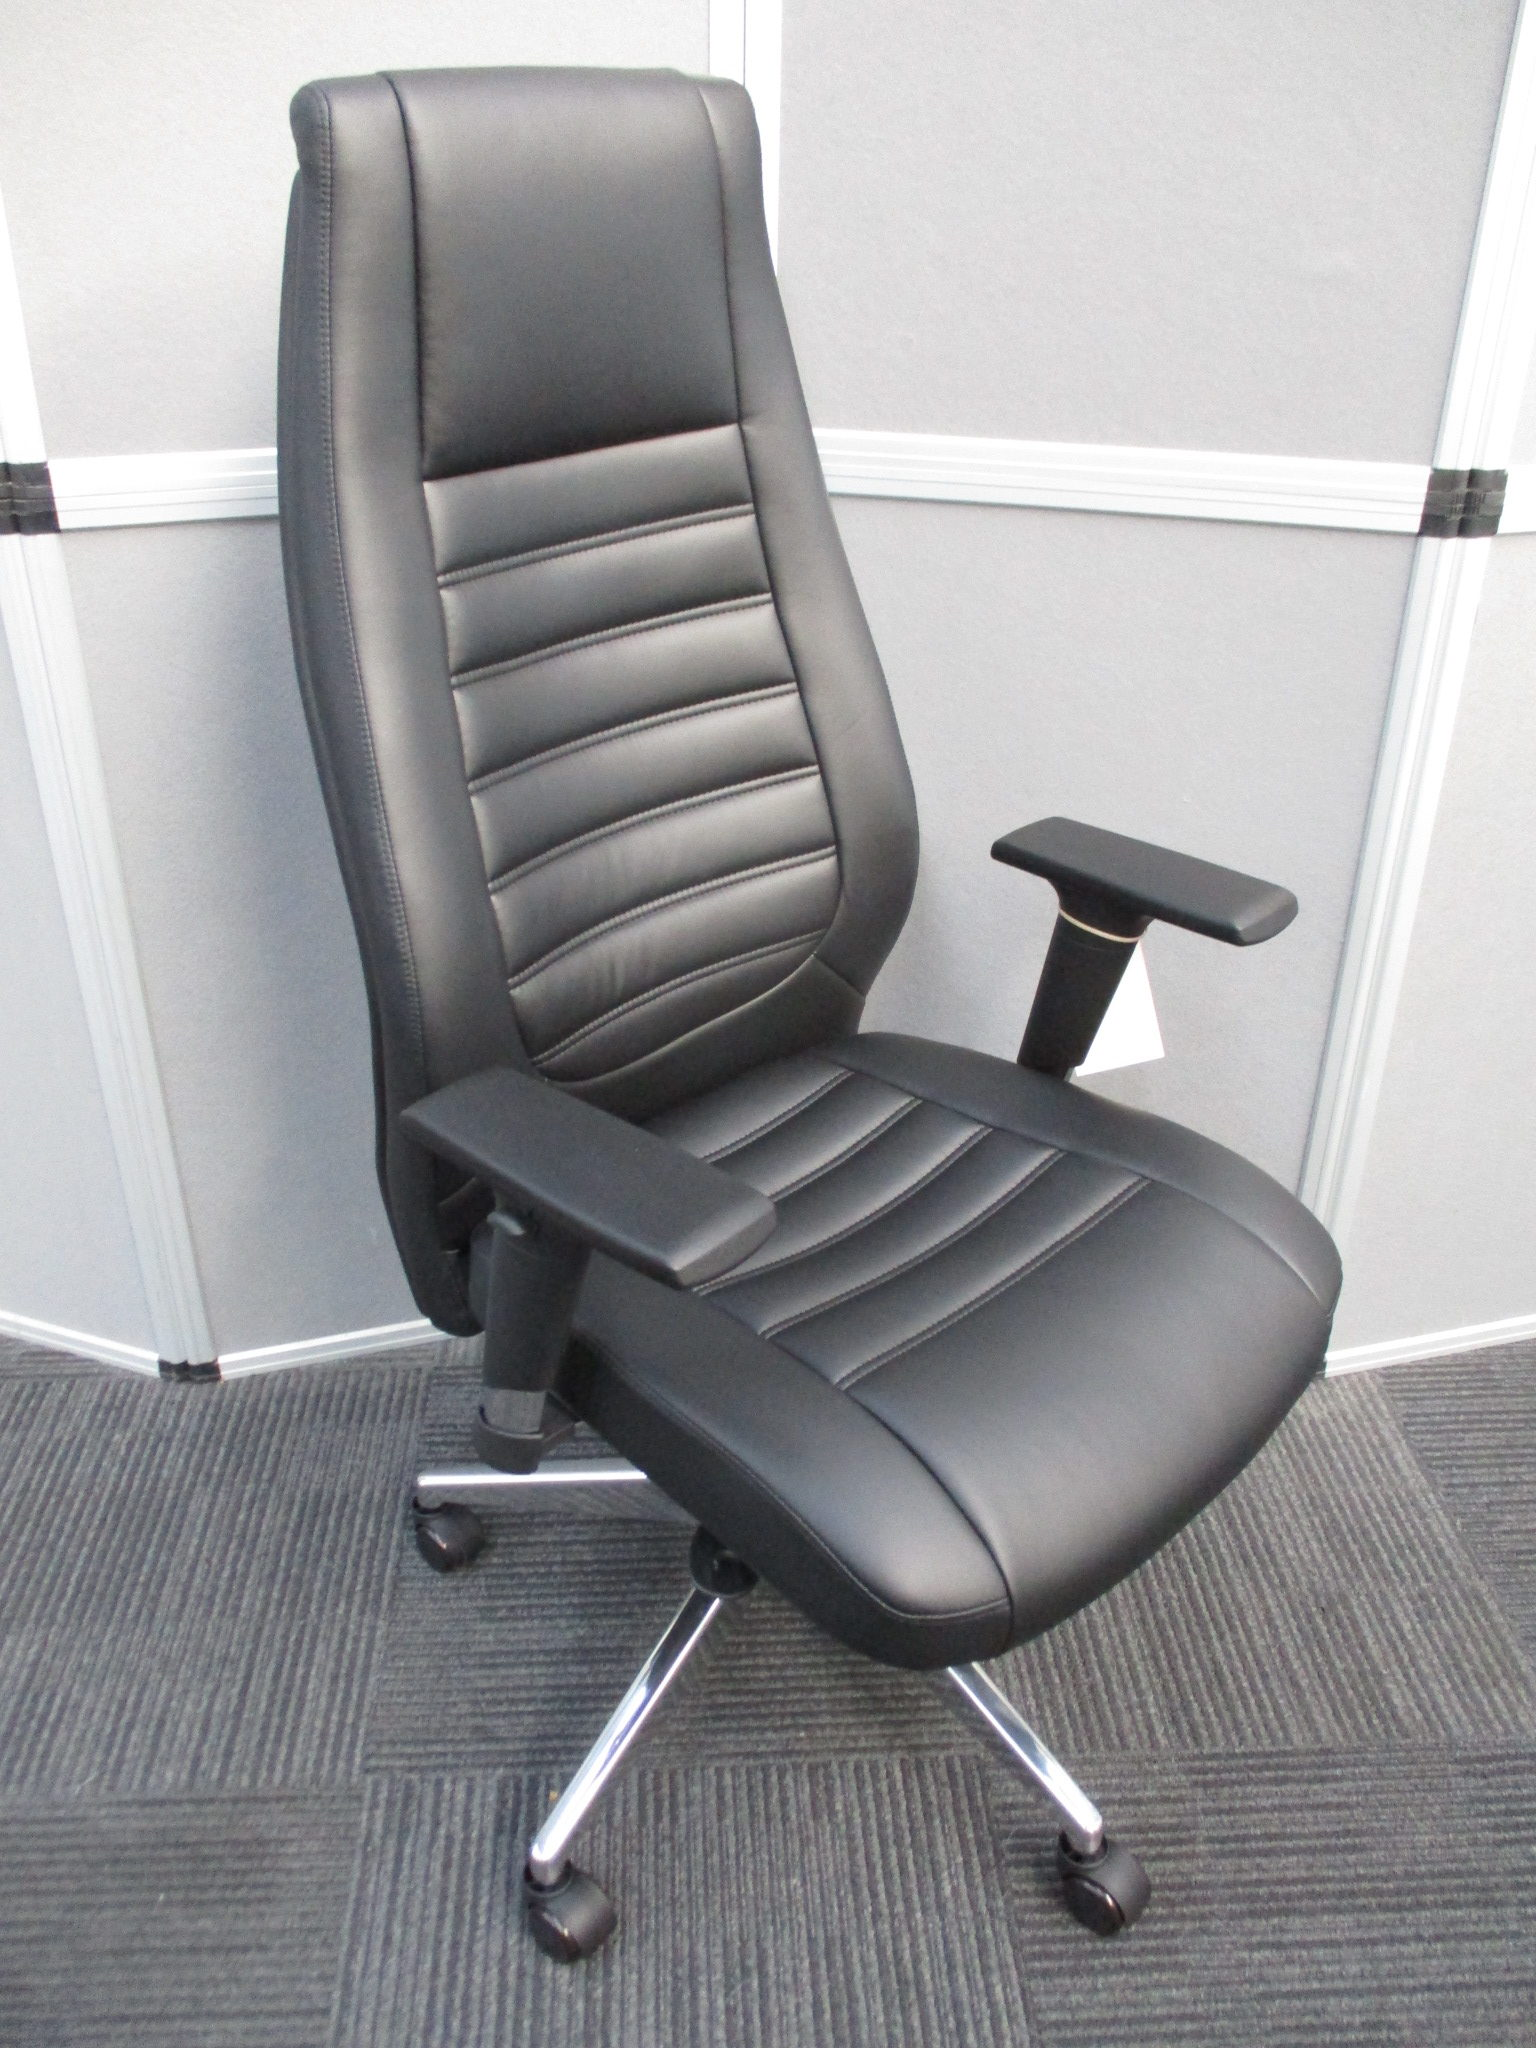 New Boston Executive Chairs $425